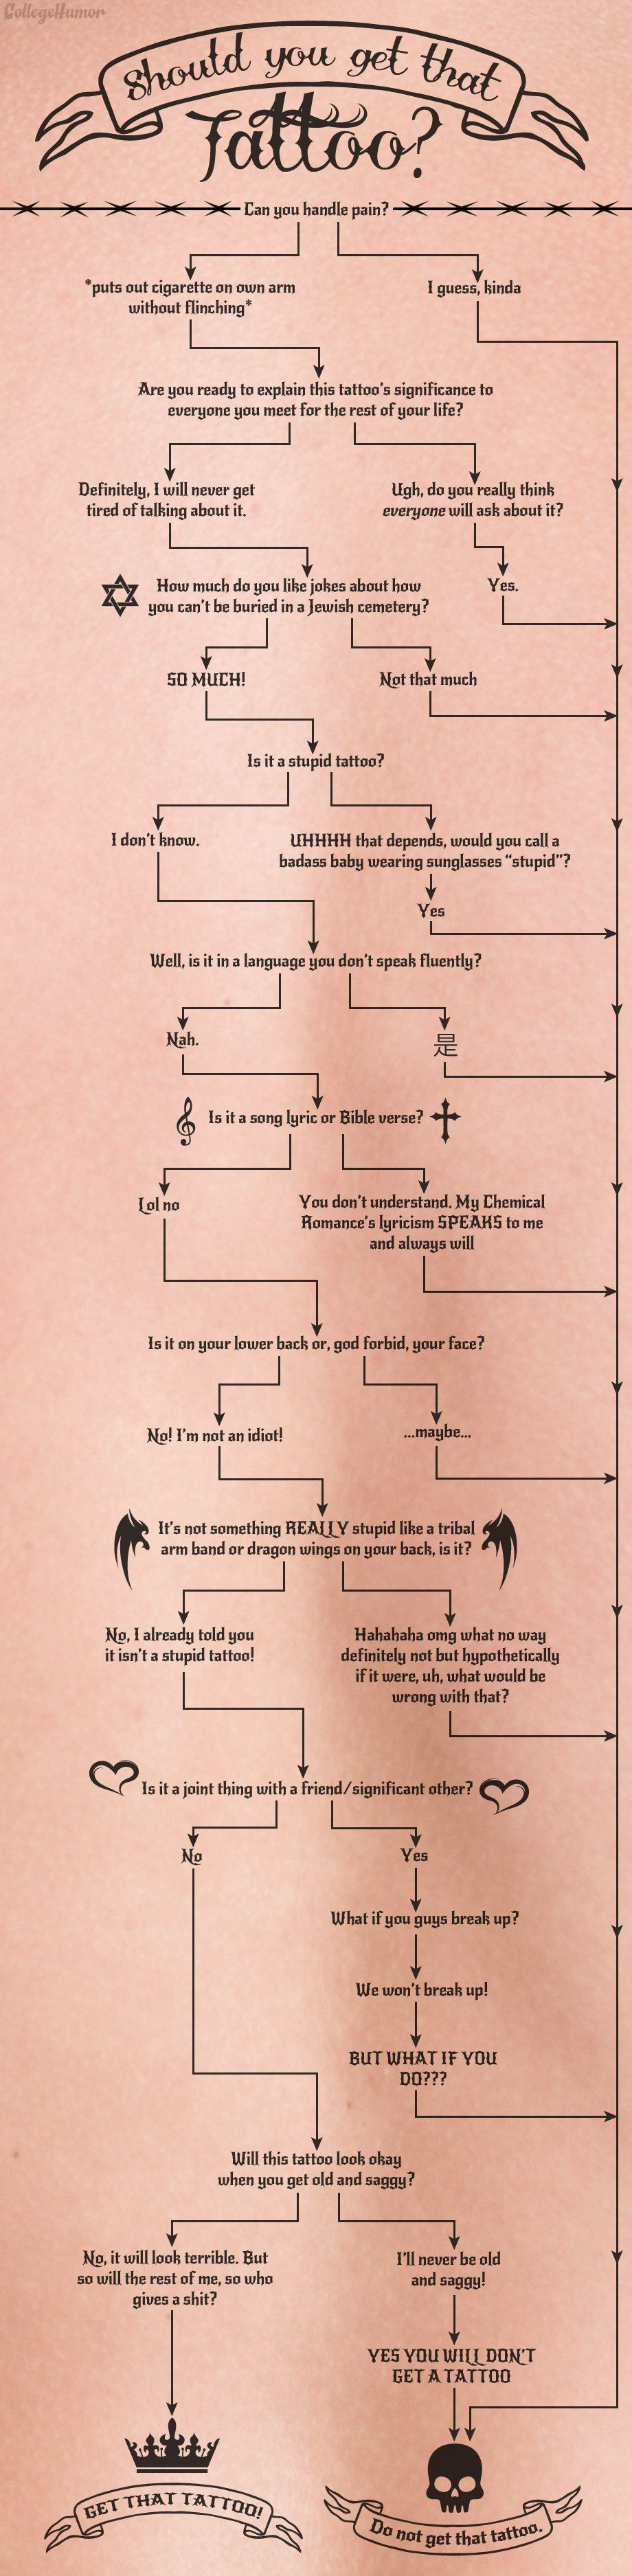 Flowchart Should You Get That Tattoo? Couple tattoos